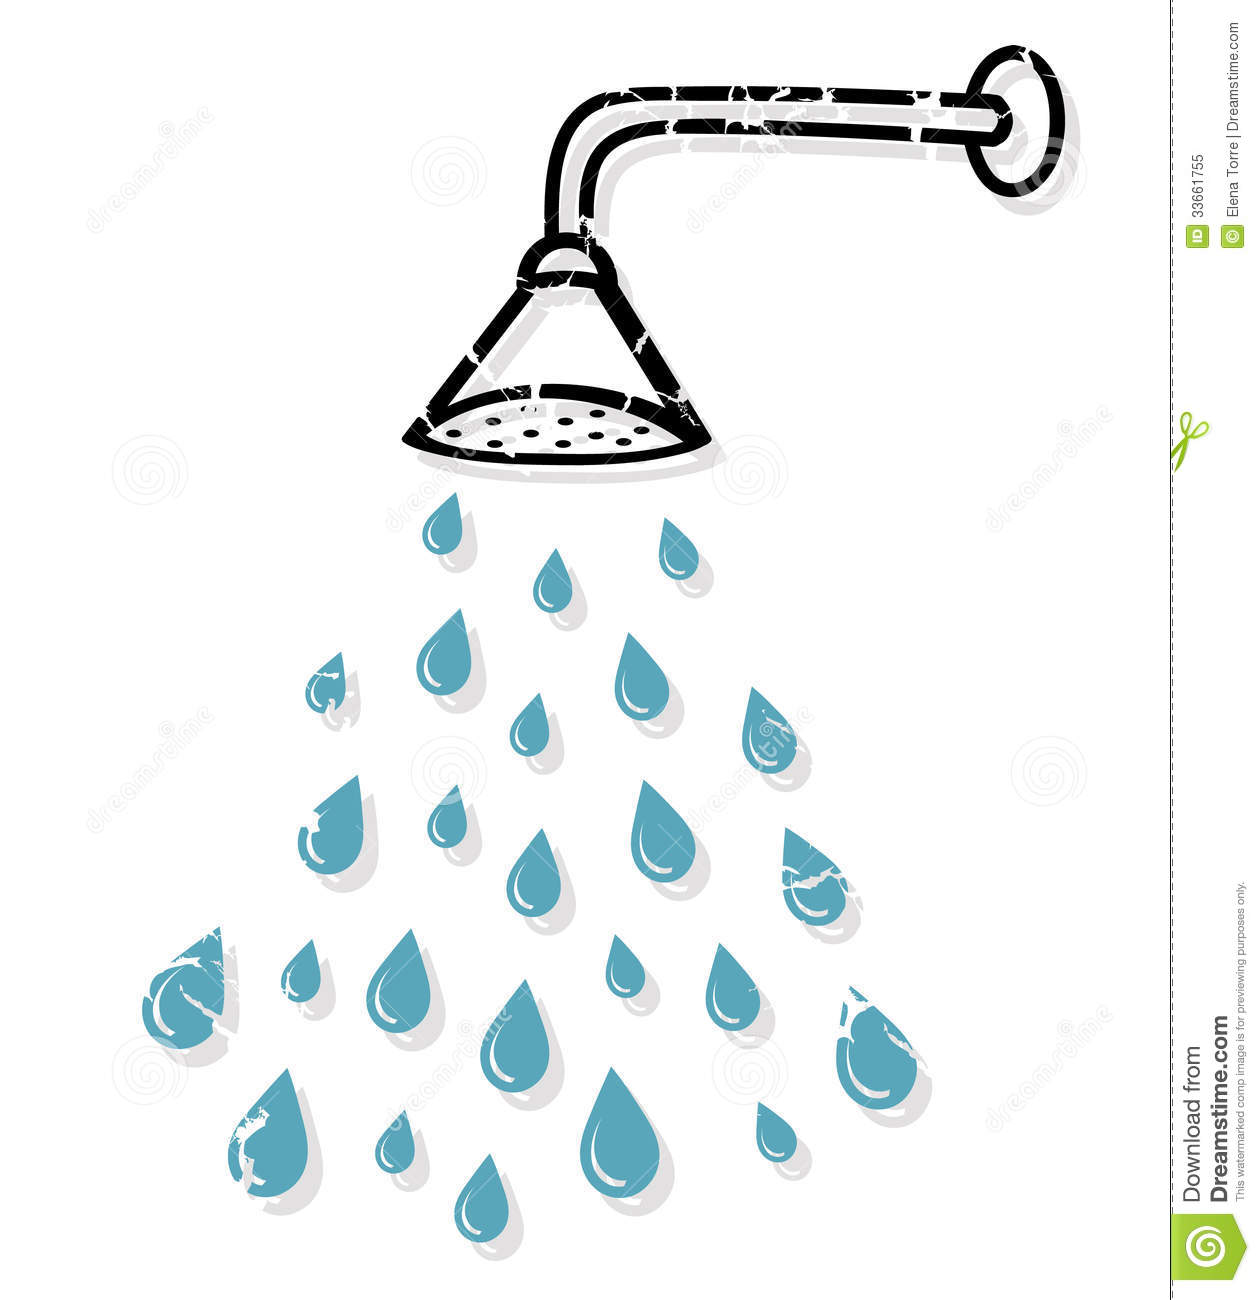 Clipart Of Shower Head And Water.